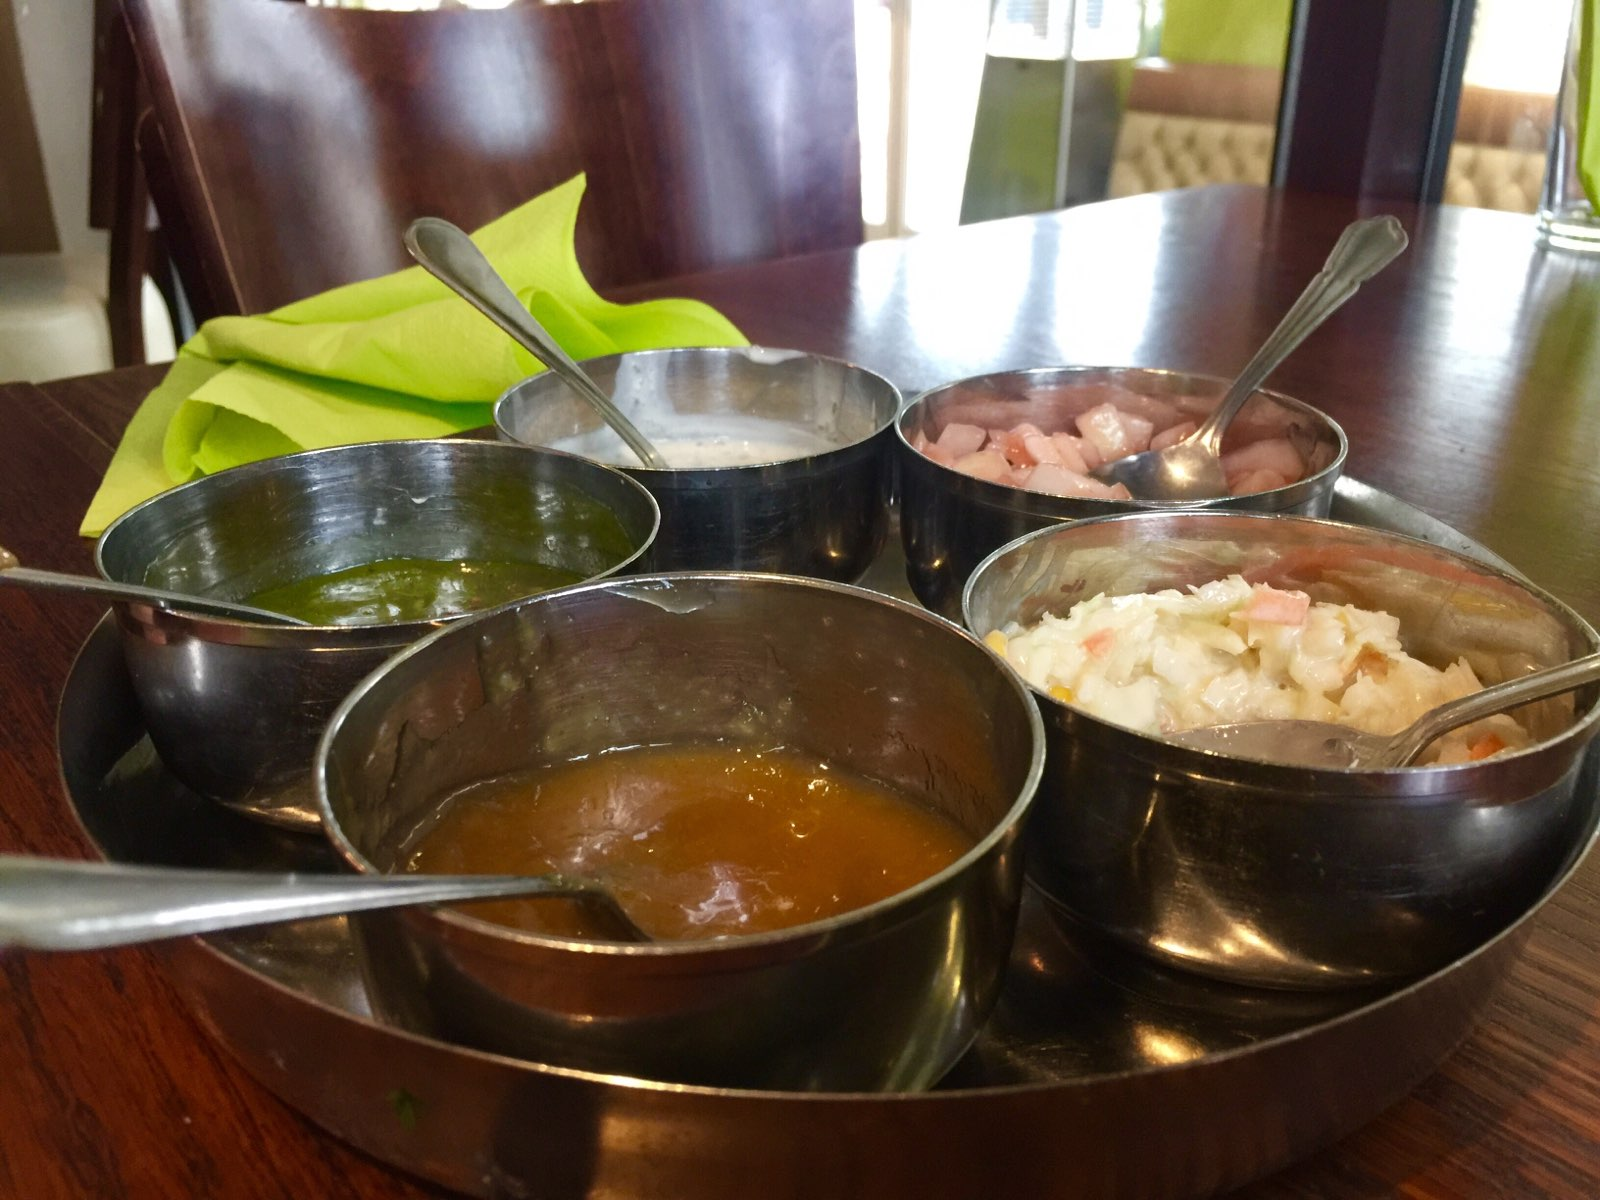 Food from every land, including this assortment of sauces from an Indian restaurant in Manchester.